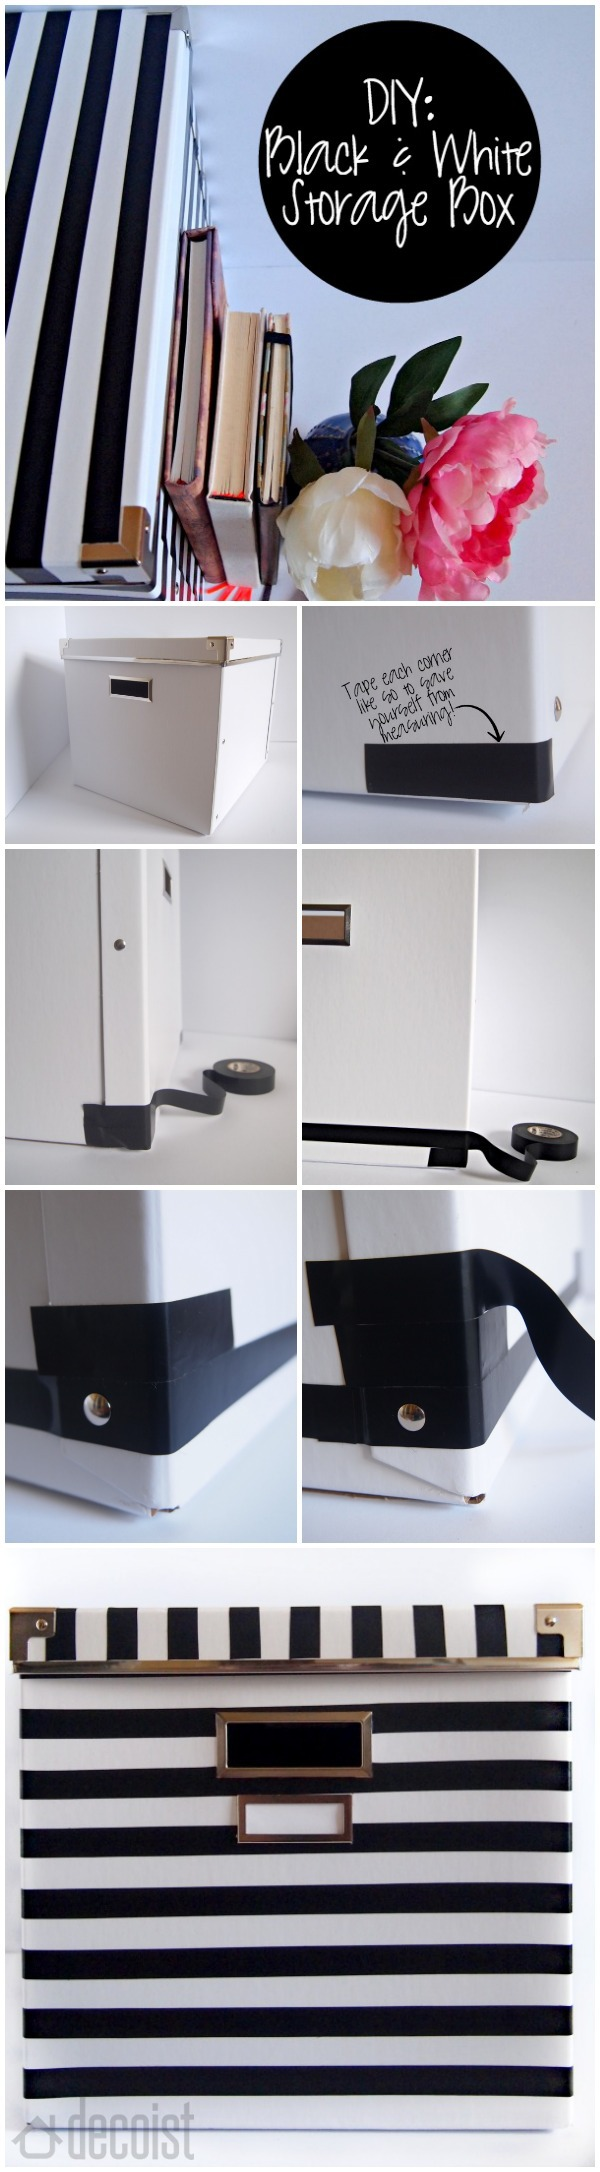 Transforming an ordinary box into a black and white storage unit using tape